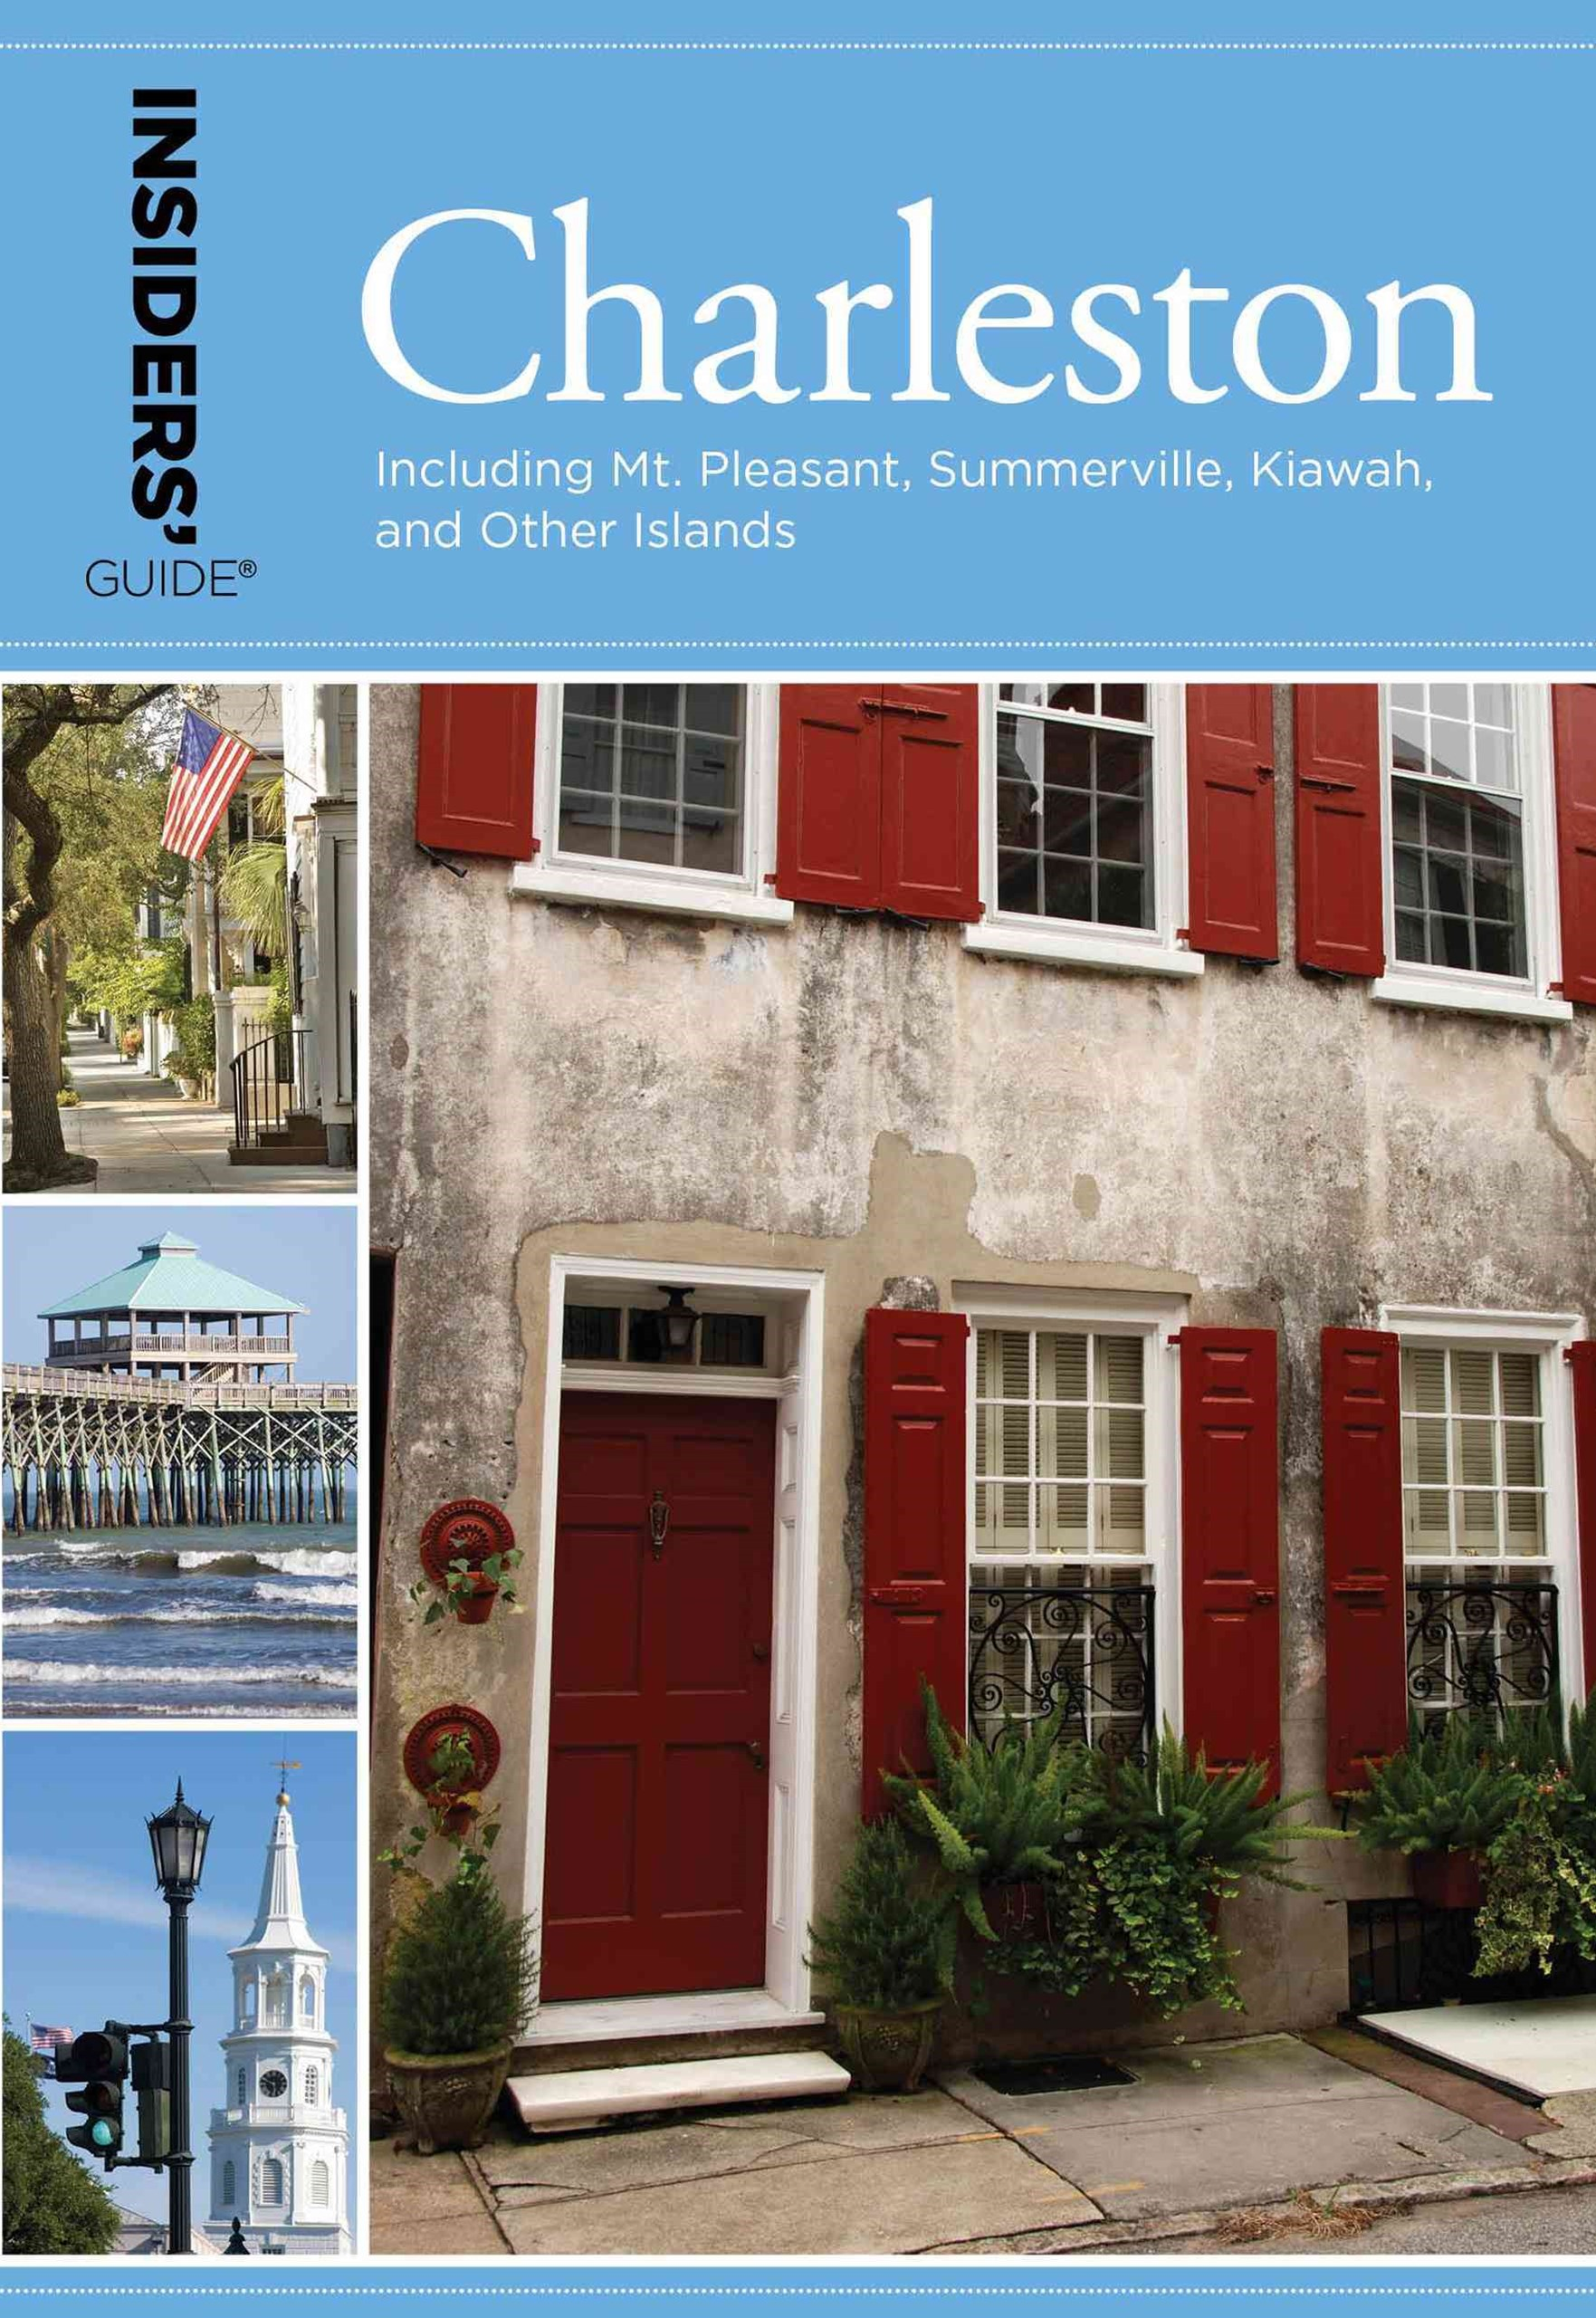 Insiders' Guide - Charleston